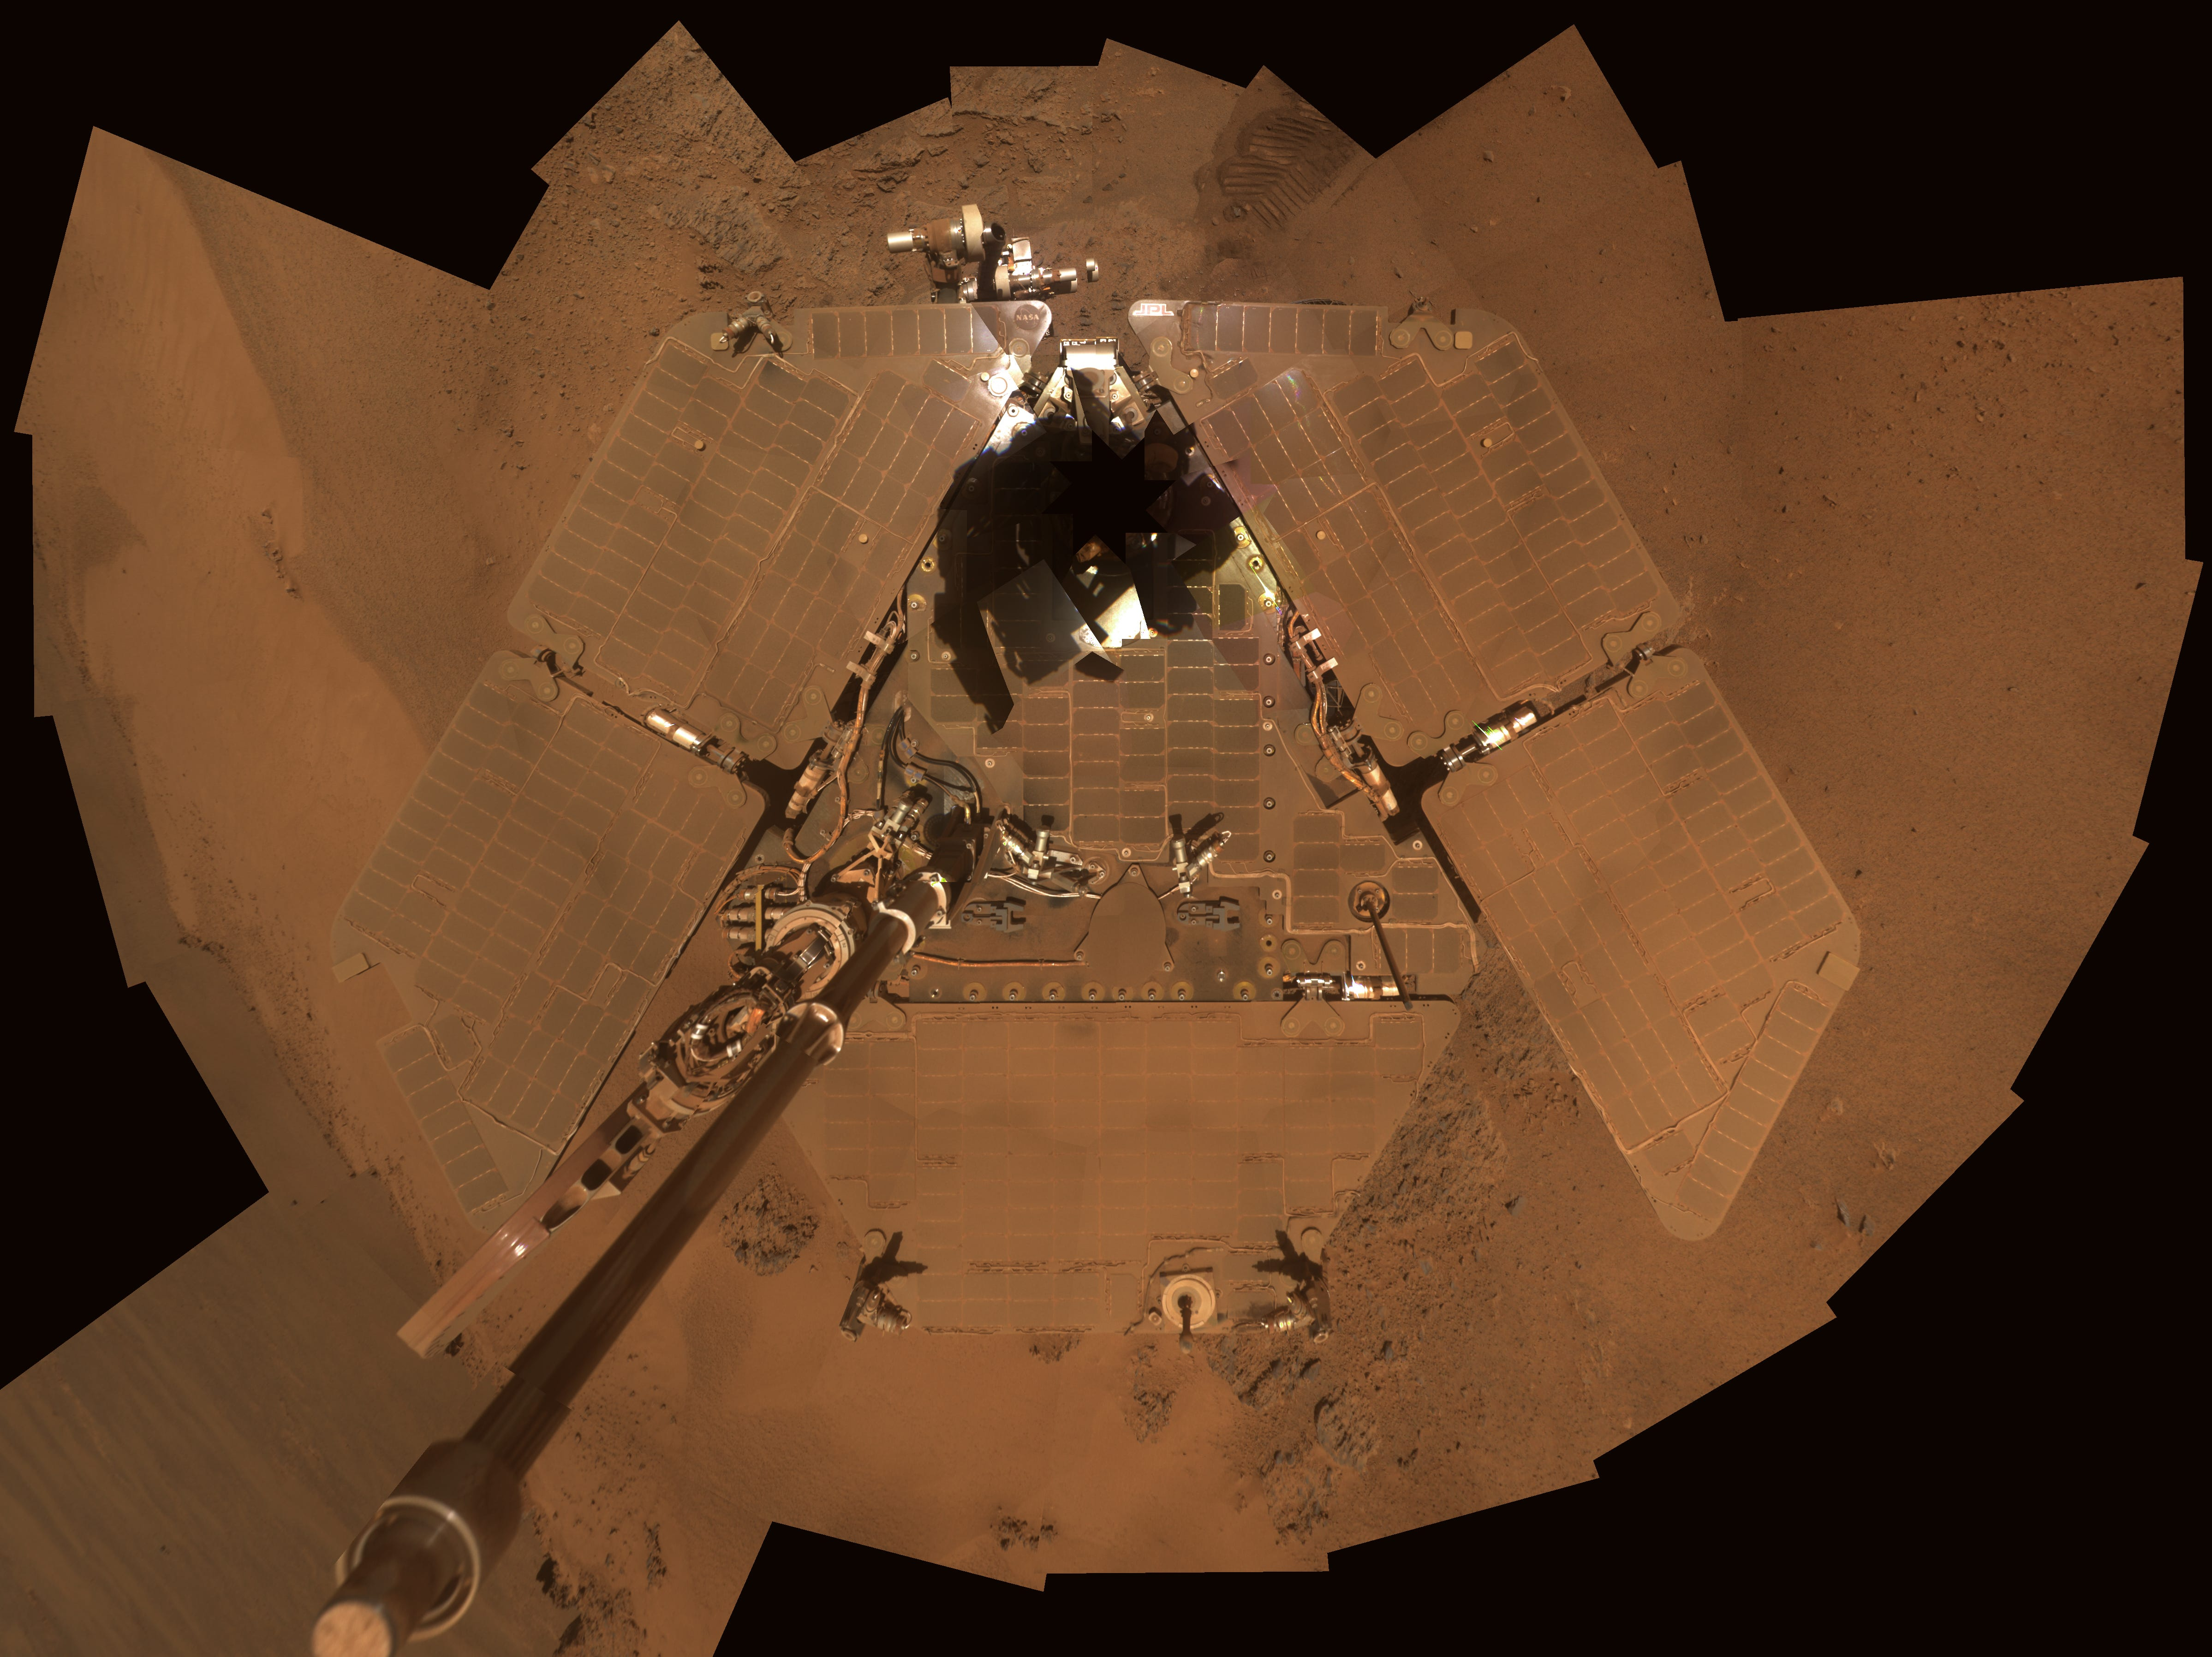 Opportunity took this dusty self-portrait on Feb. 17, 2012. The image shows dust accumulation on the rover's solar panels. Dust reduces the rover's power supply and limits its ability to move about until winter is over or the wind clears the panels.